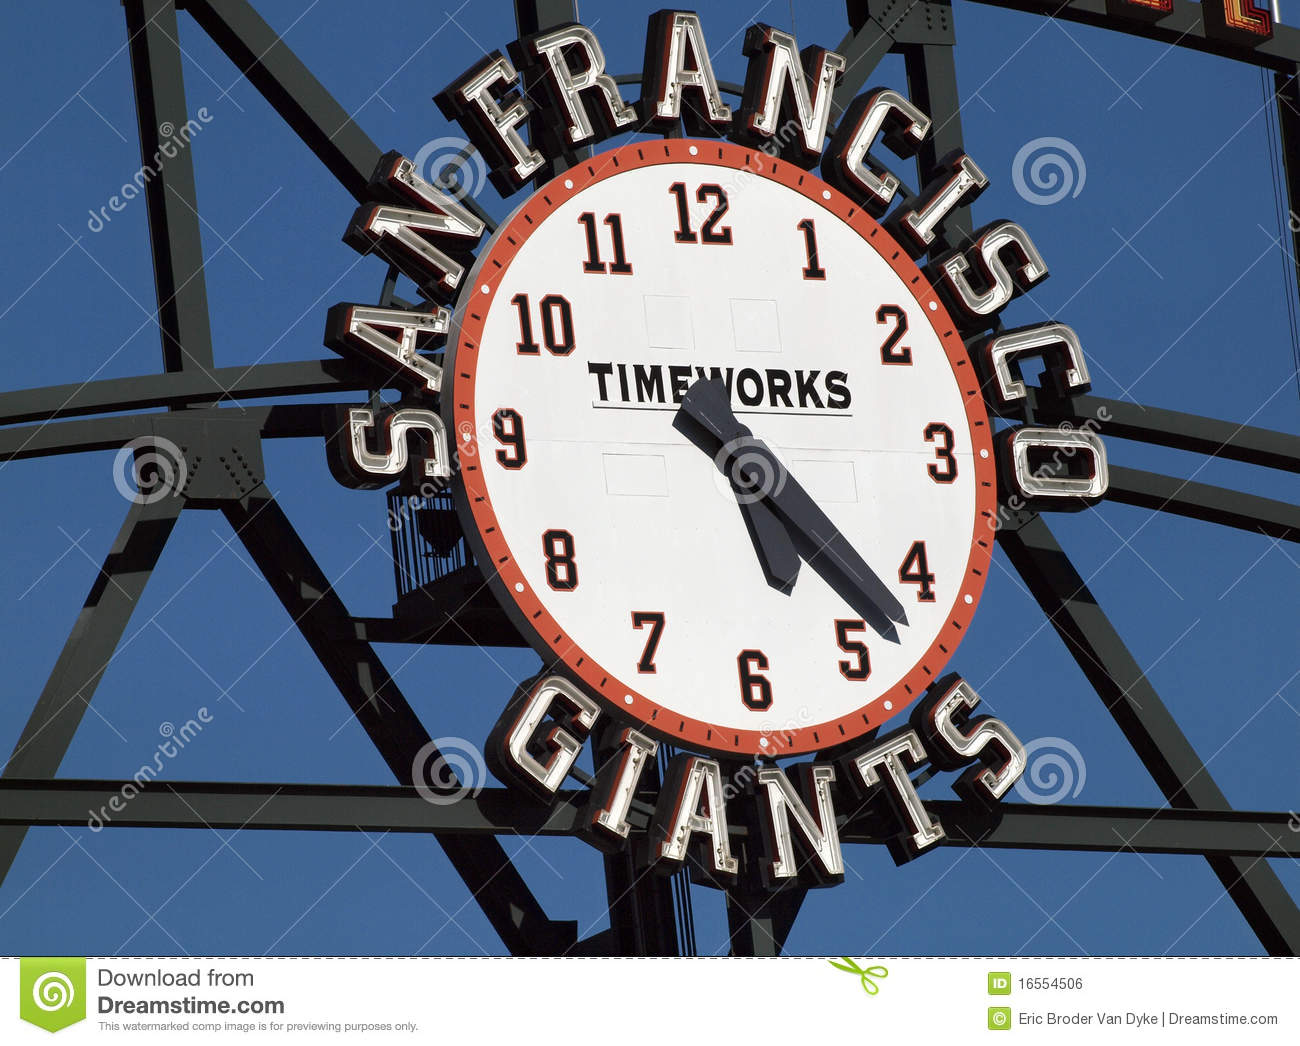 San Francisco Giants Scoreboard Clock by TimeWorks